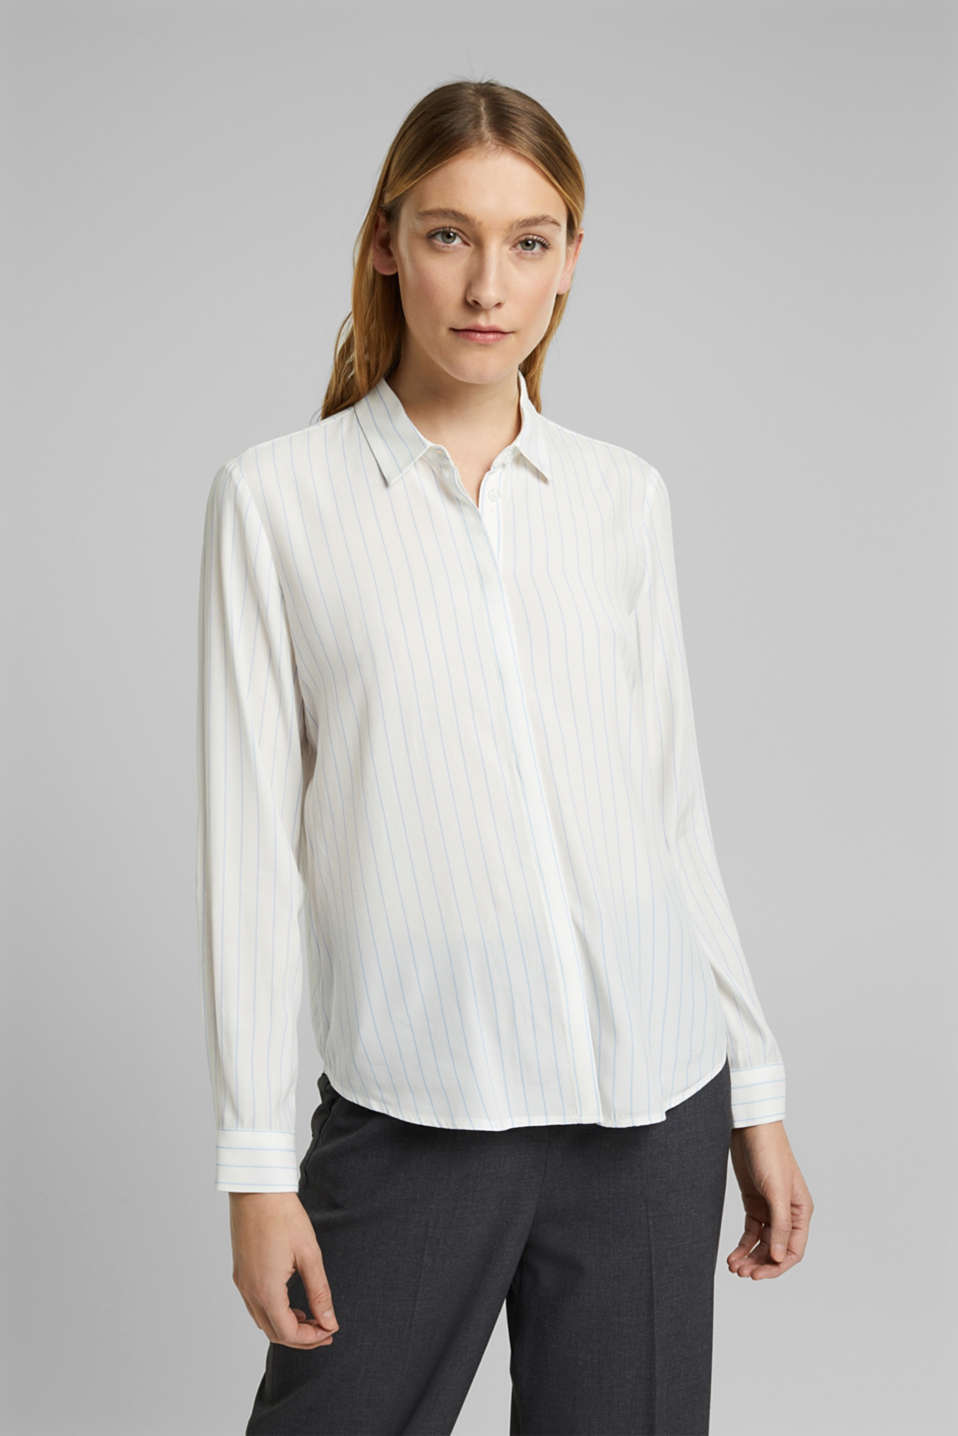 Esprit - Crêpe blouse made of LENZING™ ECOVERO™